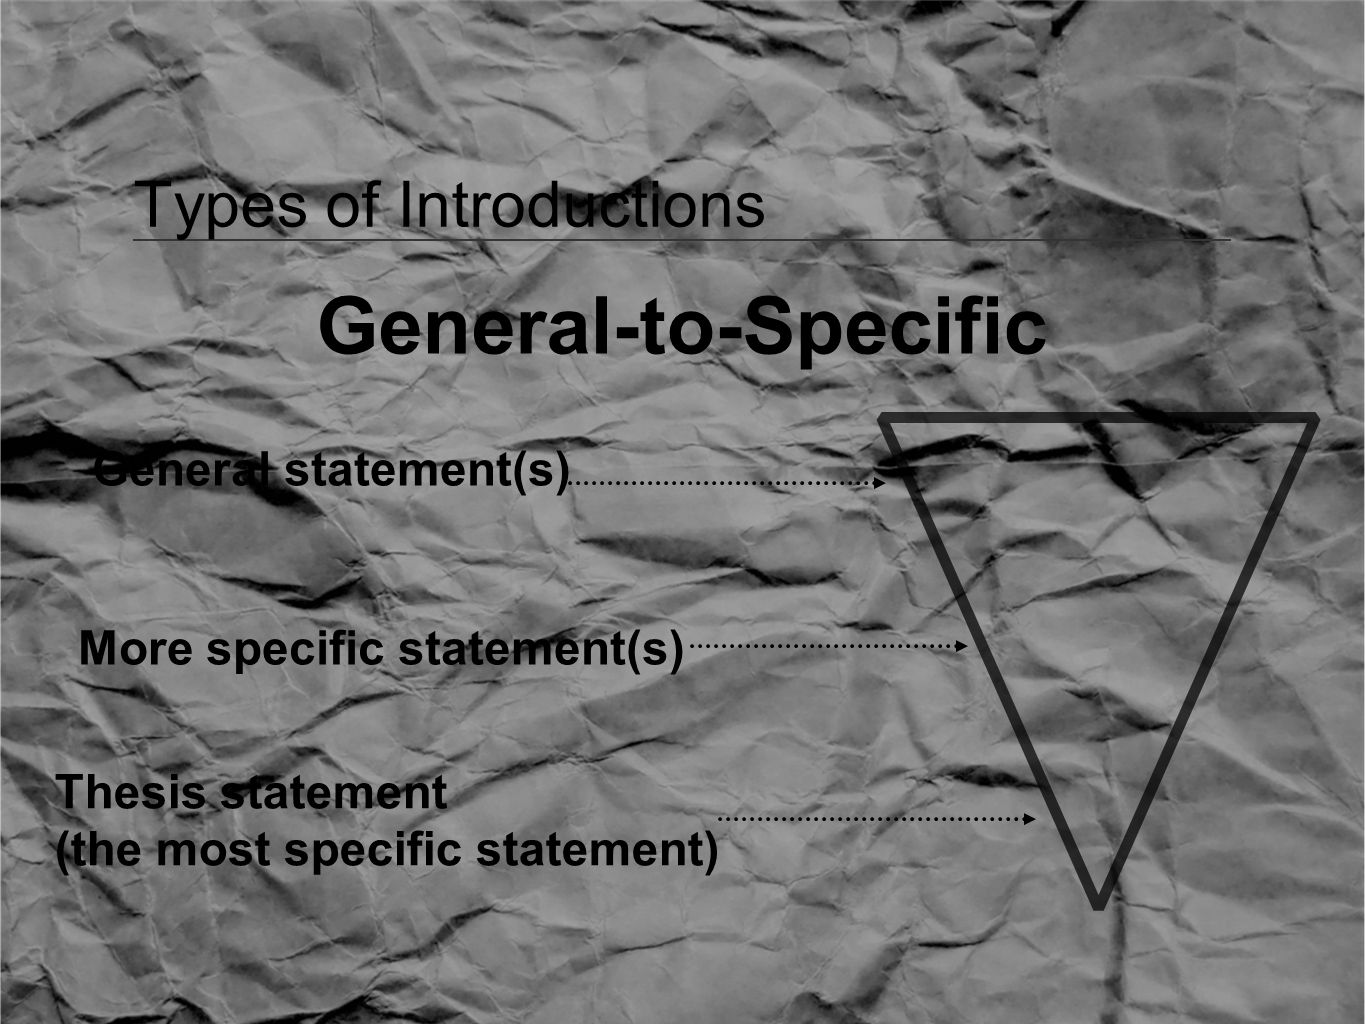 Types of Introductions General-to-Specific General statement(s) More specific statement(s) Thesis statement (the most specific statement)